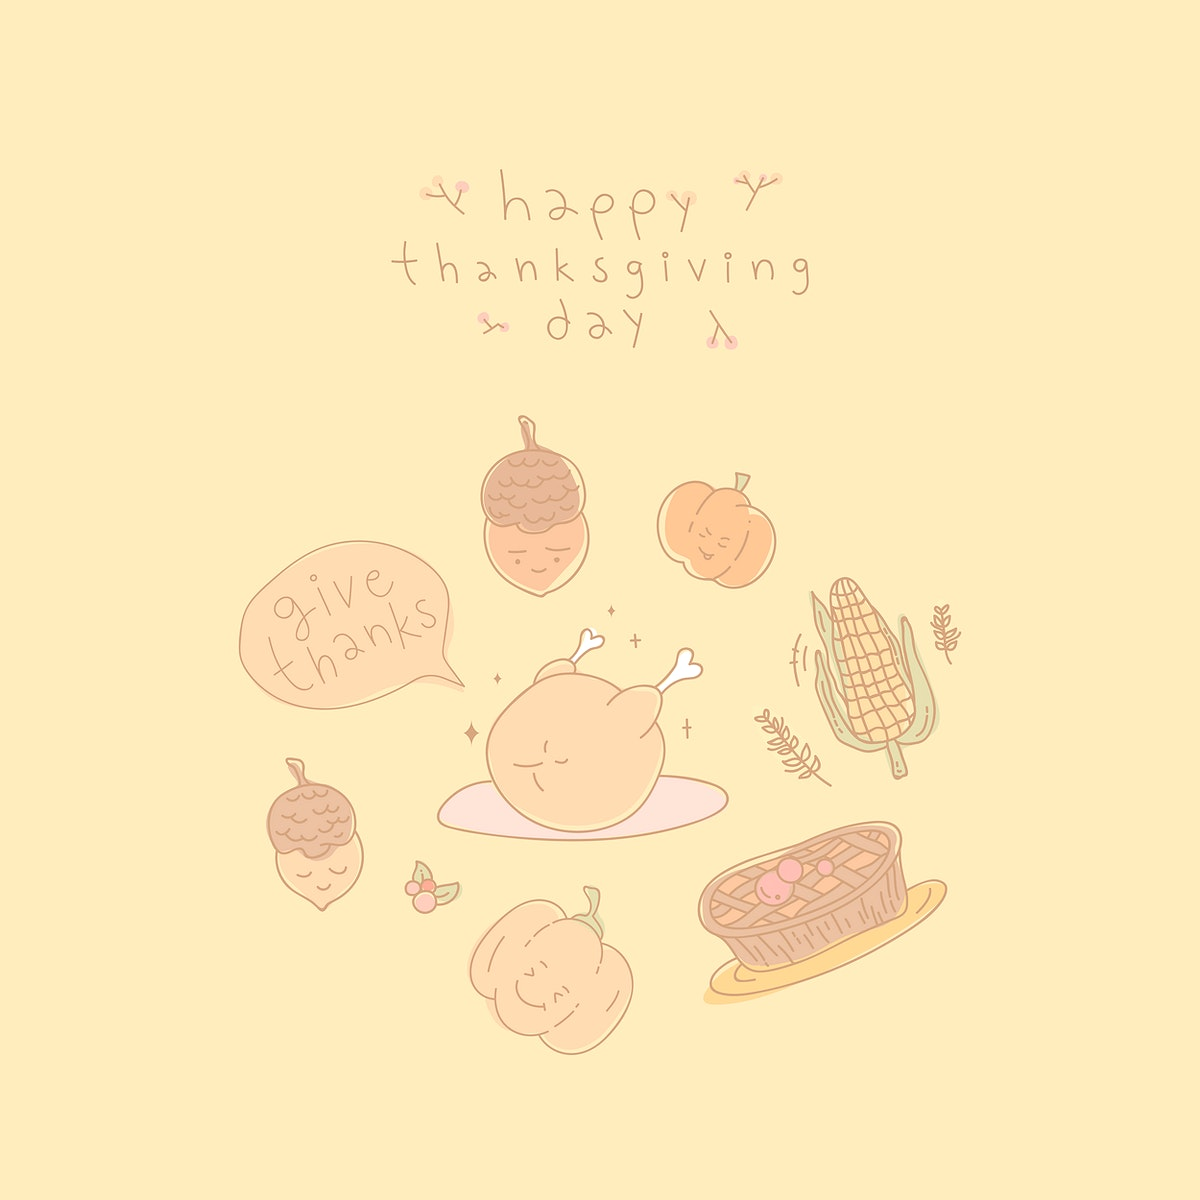 Thanksgiving doodle elements on yellow background vector